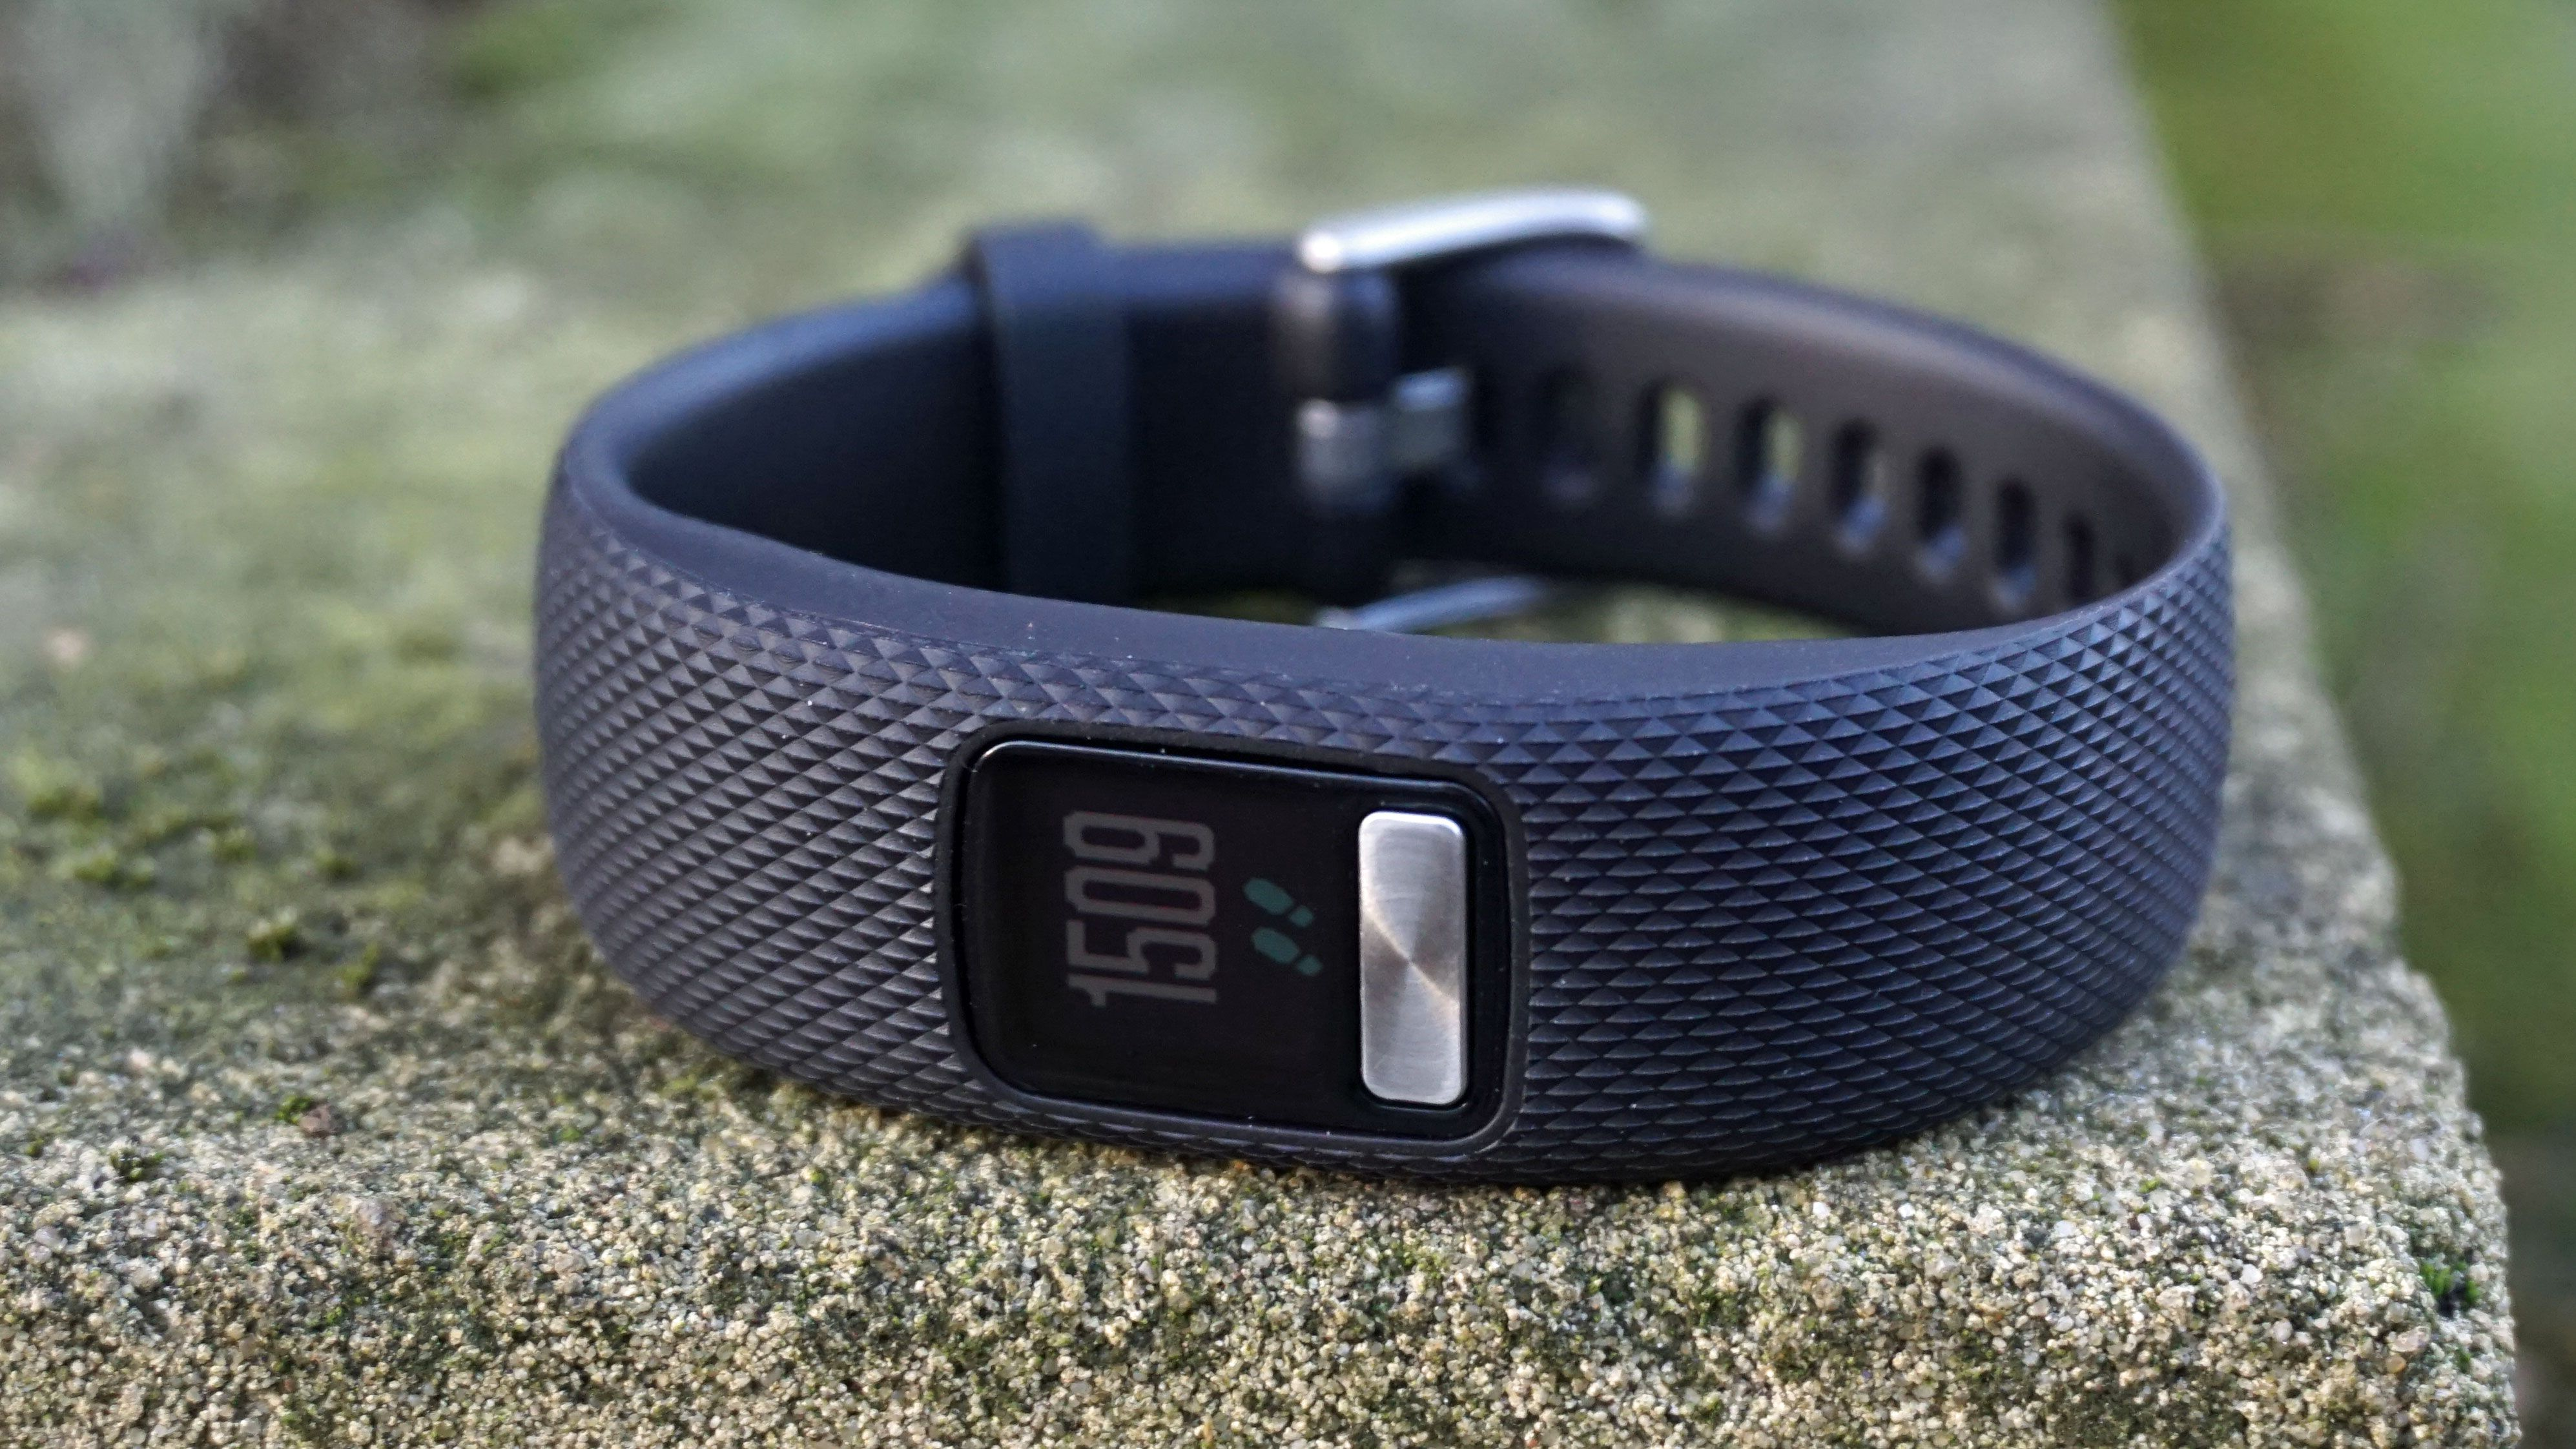 3975ed63fa03 Best fitness tracker 2019: the top 10 activity bands on the planet |  TechRadar